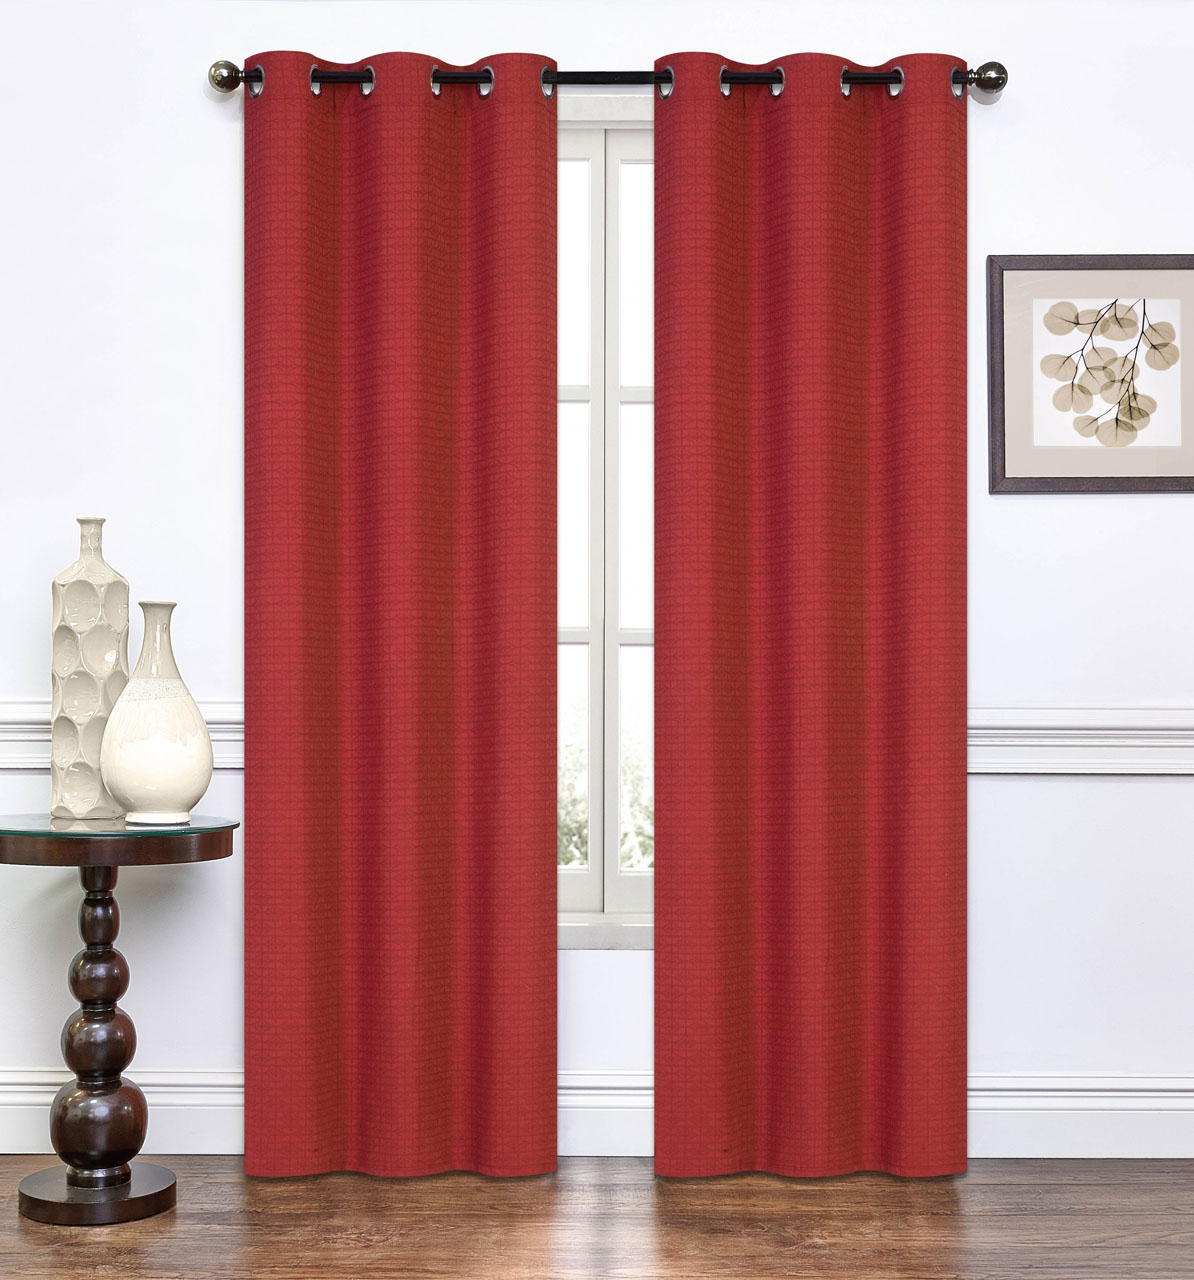 Pair Of Lynette Burnt Rust Window Curtain Panels W/grommets Throughout Solid Grommet Top Curtain Panel Pairs (View 13 of 30)